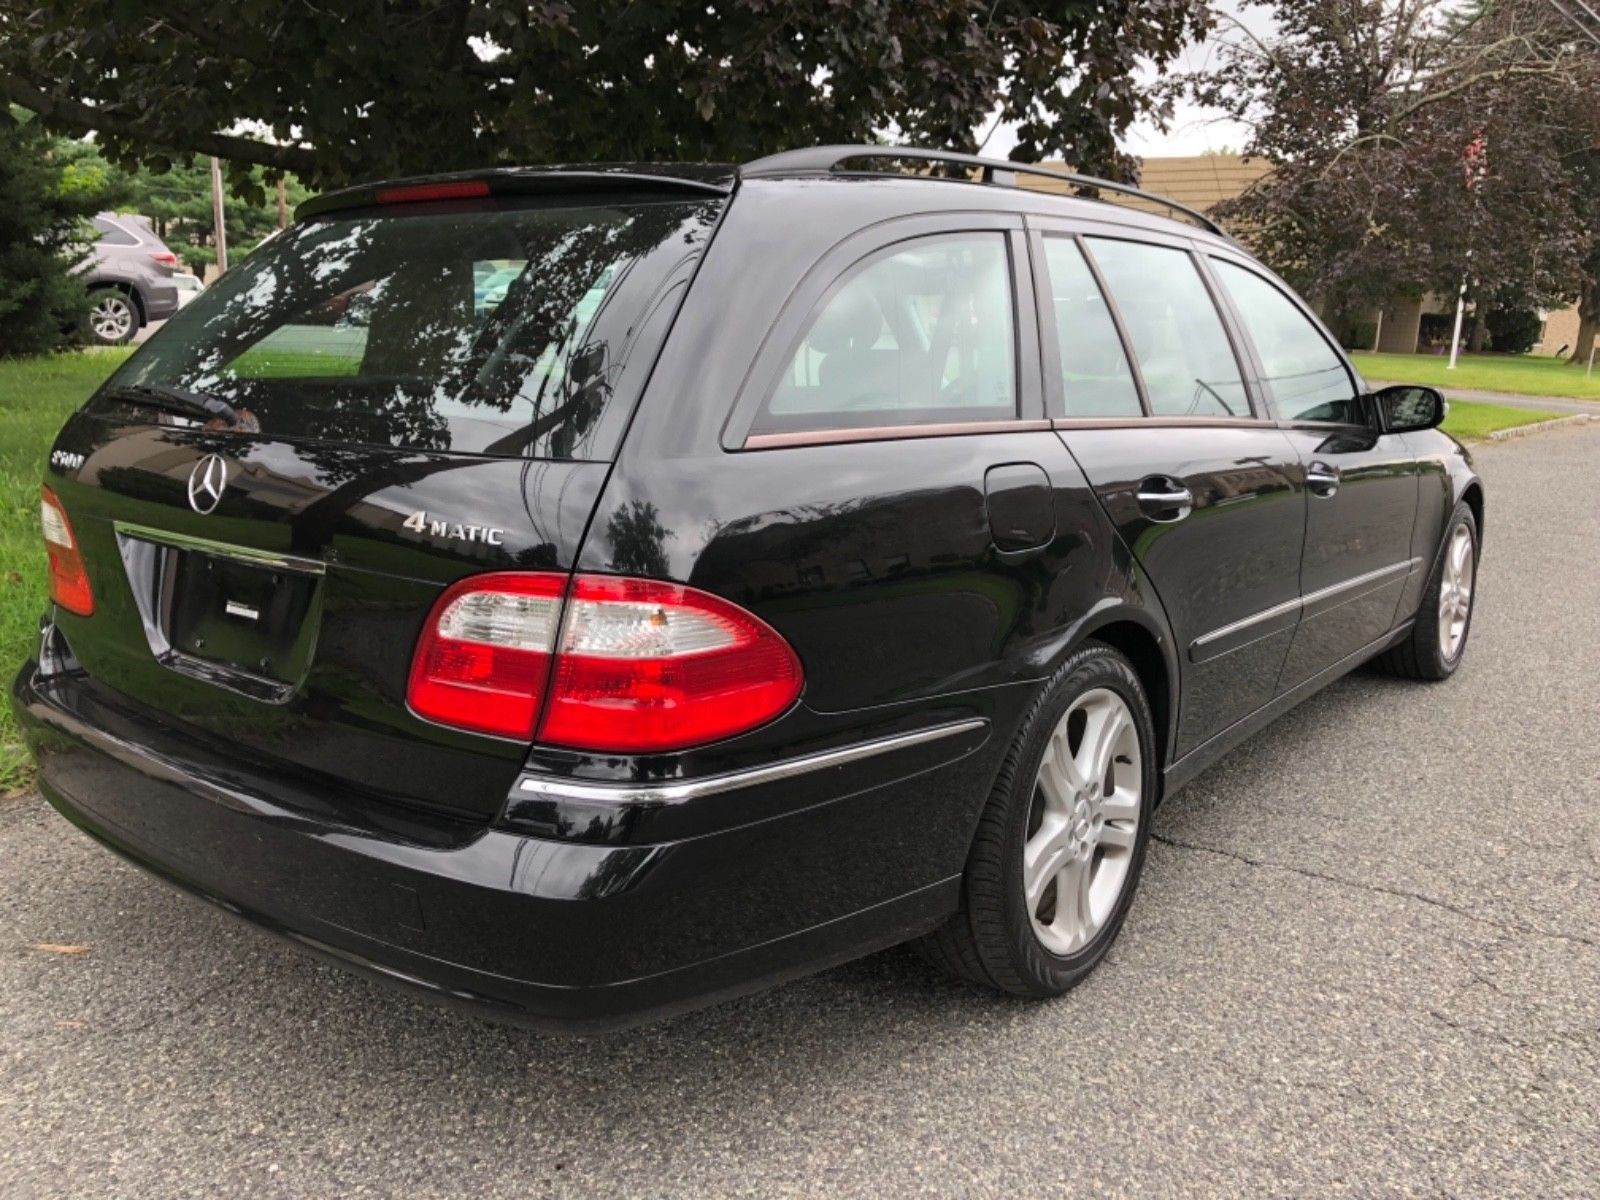 Awesome 2005 Mercedes Benz E Class V8 * 7 SEATER * LOW MILES 2005 MERCEDES  BENZ E500 STATIONWAGON * GORGEOUS * WELL KEPT * VERY CLEAN 2017/2018